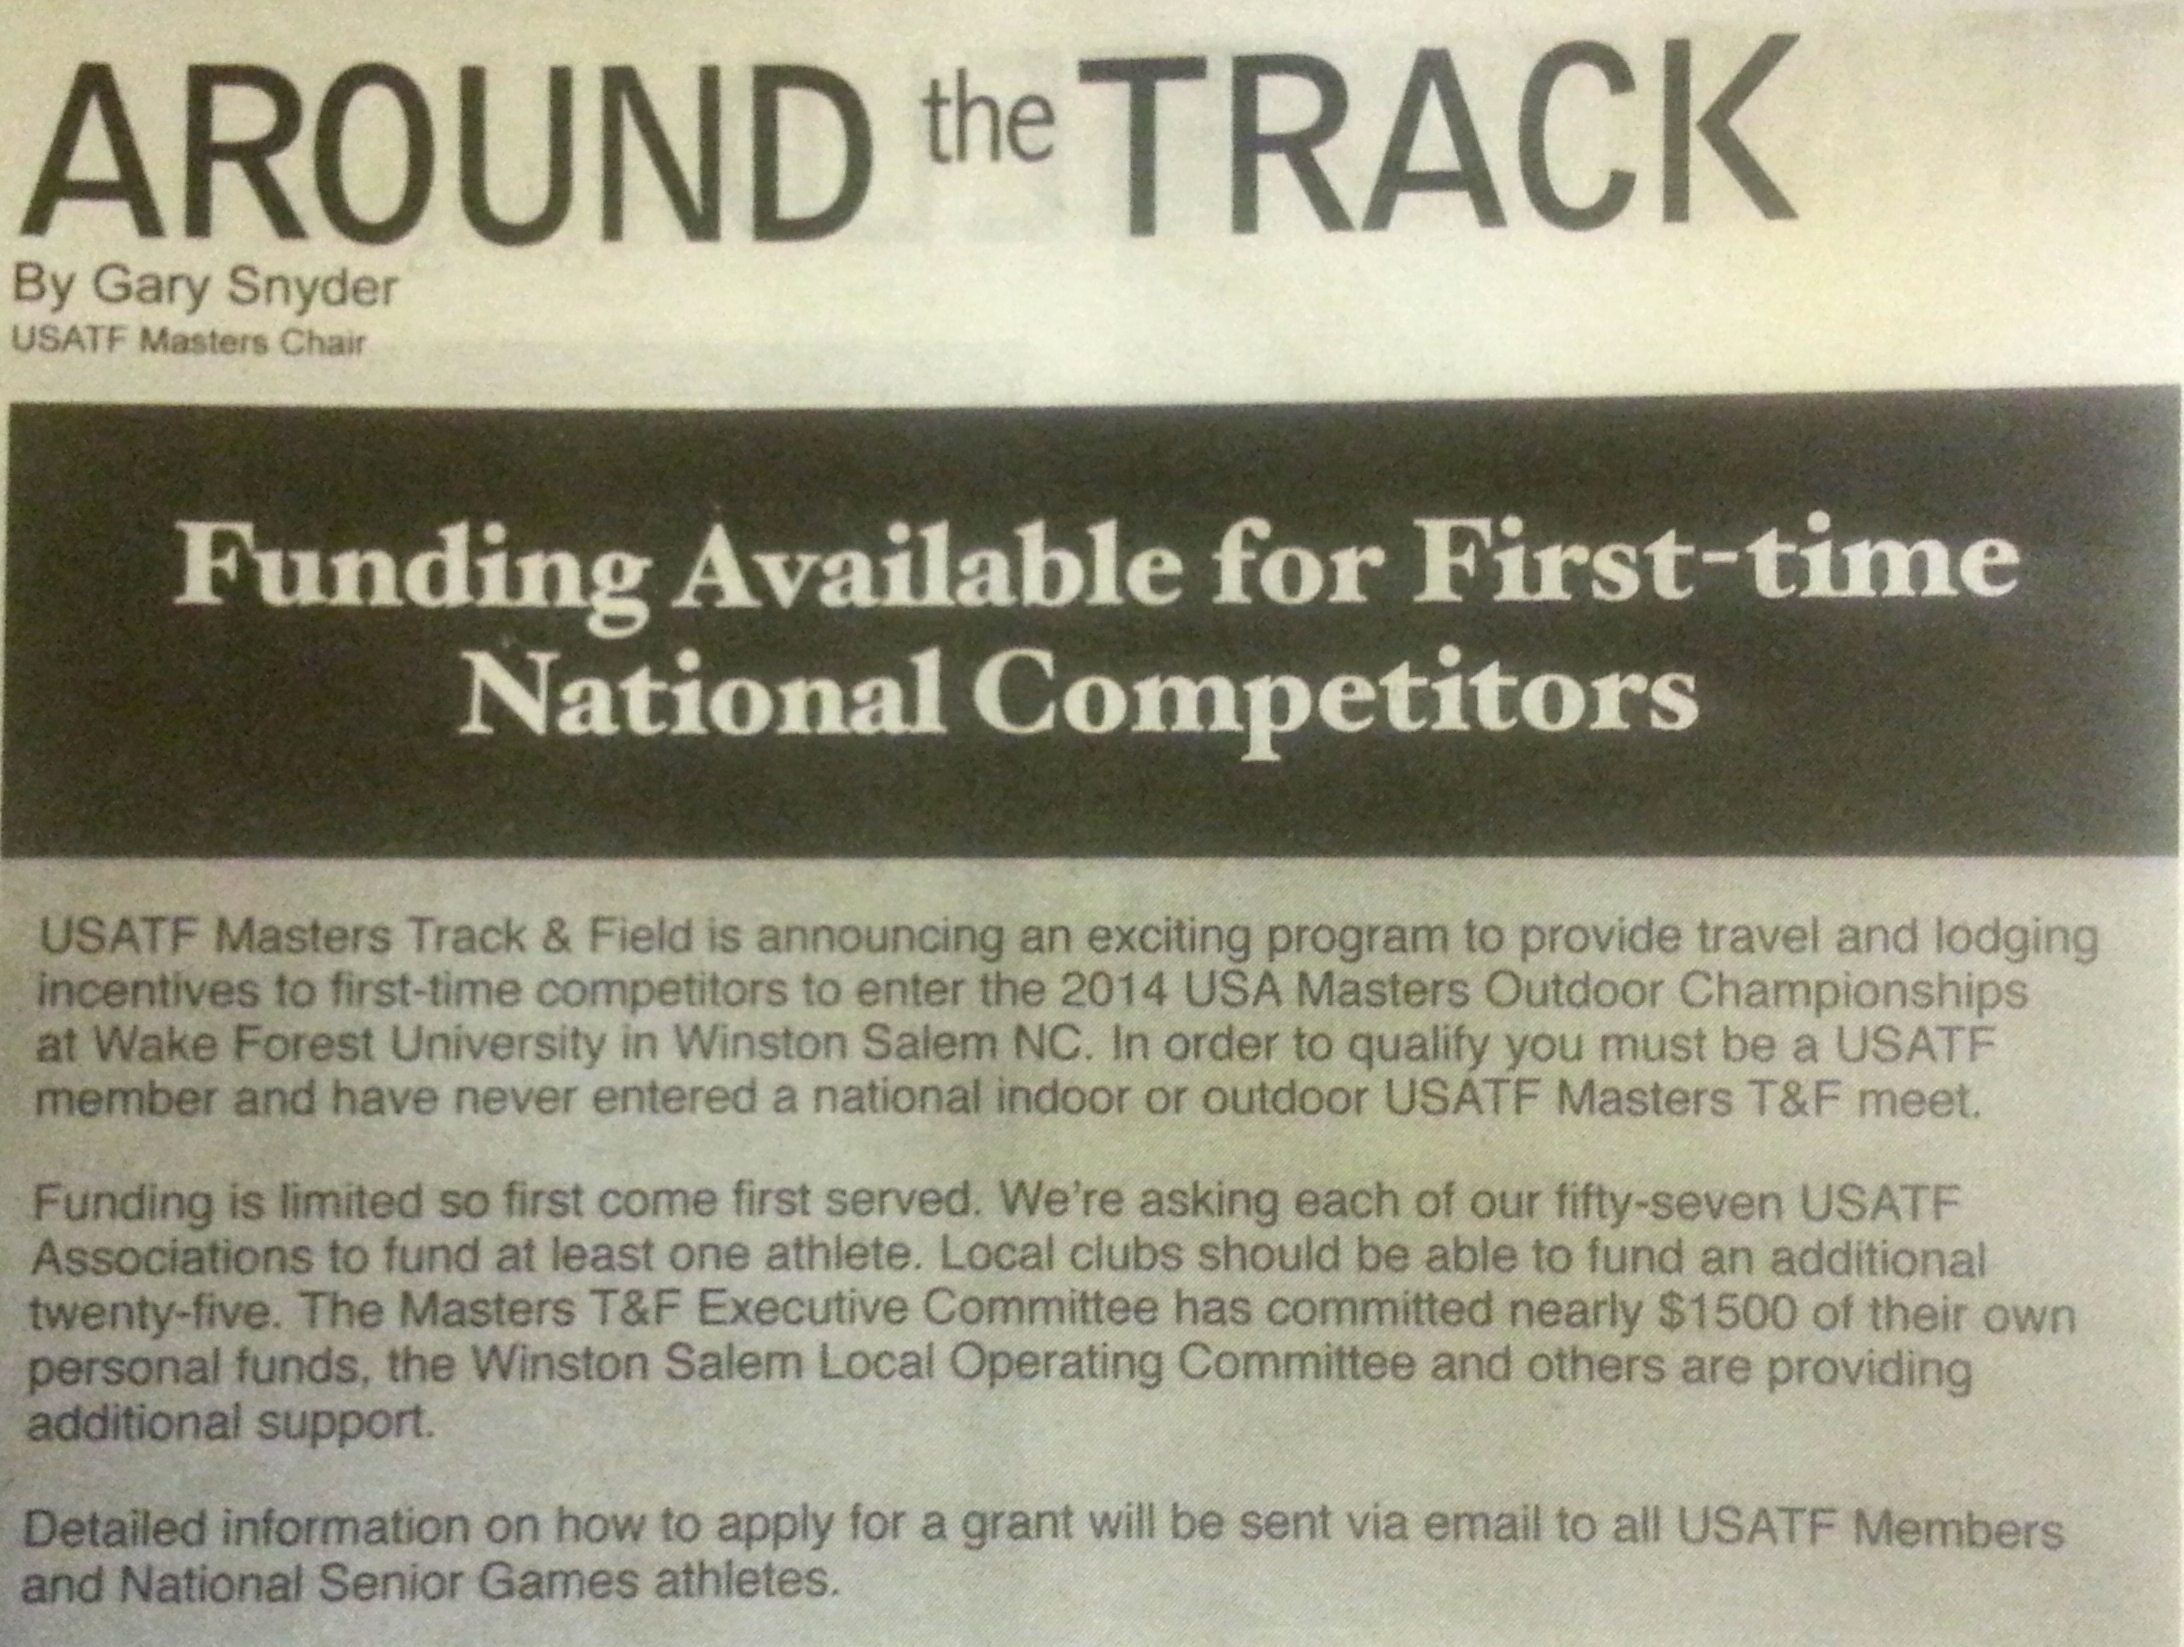 Click on the image to read Gary Snyder's offer of free travel and lodging to 2014 nationals.